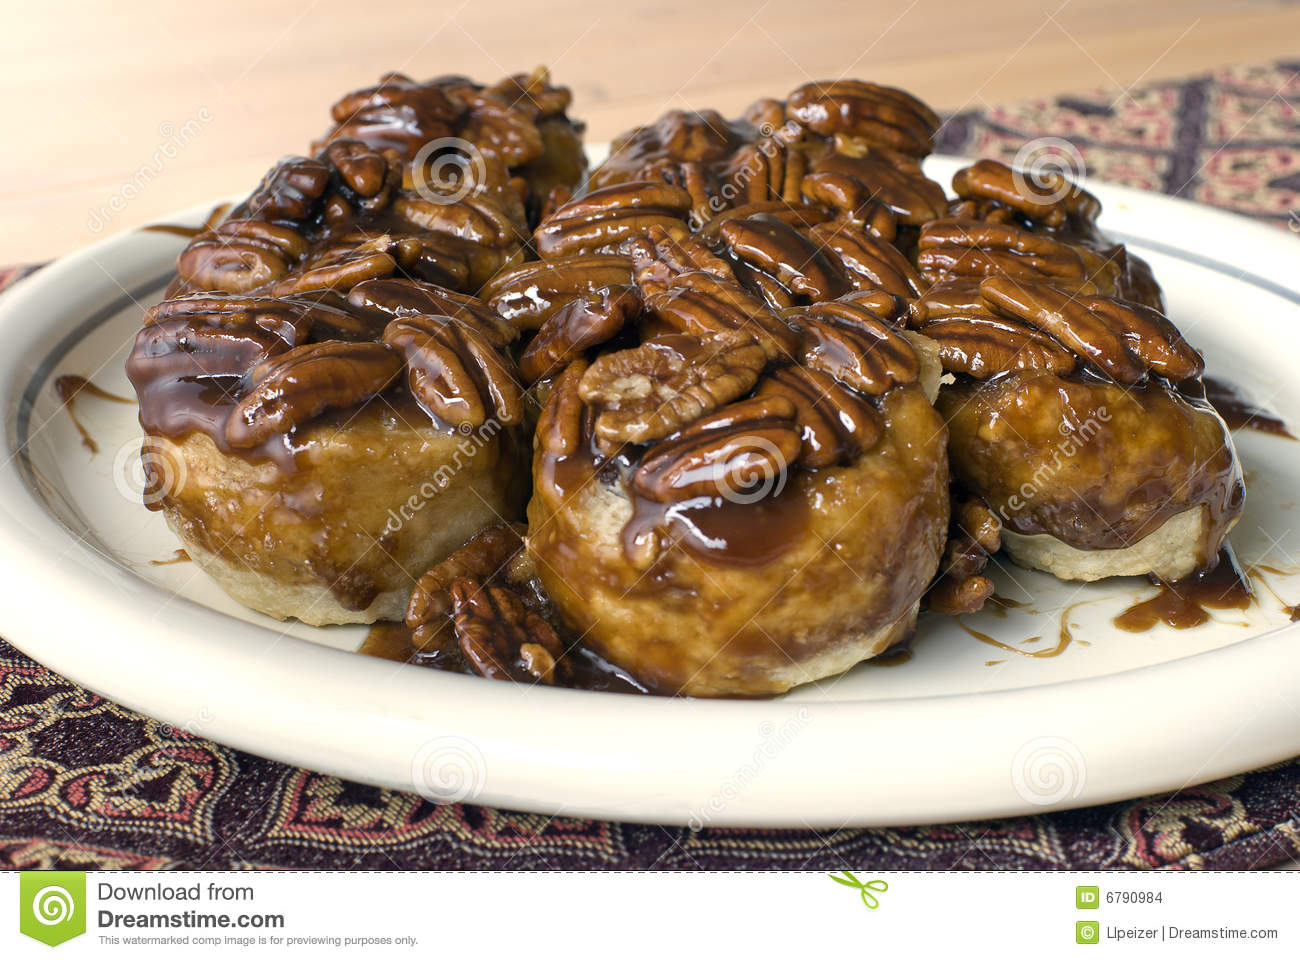 Plate full of homemade cinnamon pecan sticky buns.